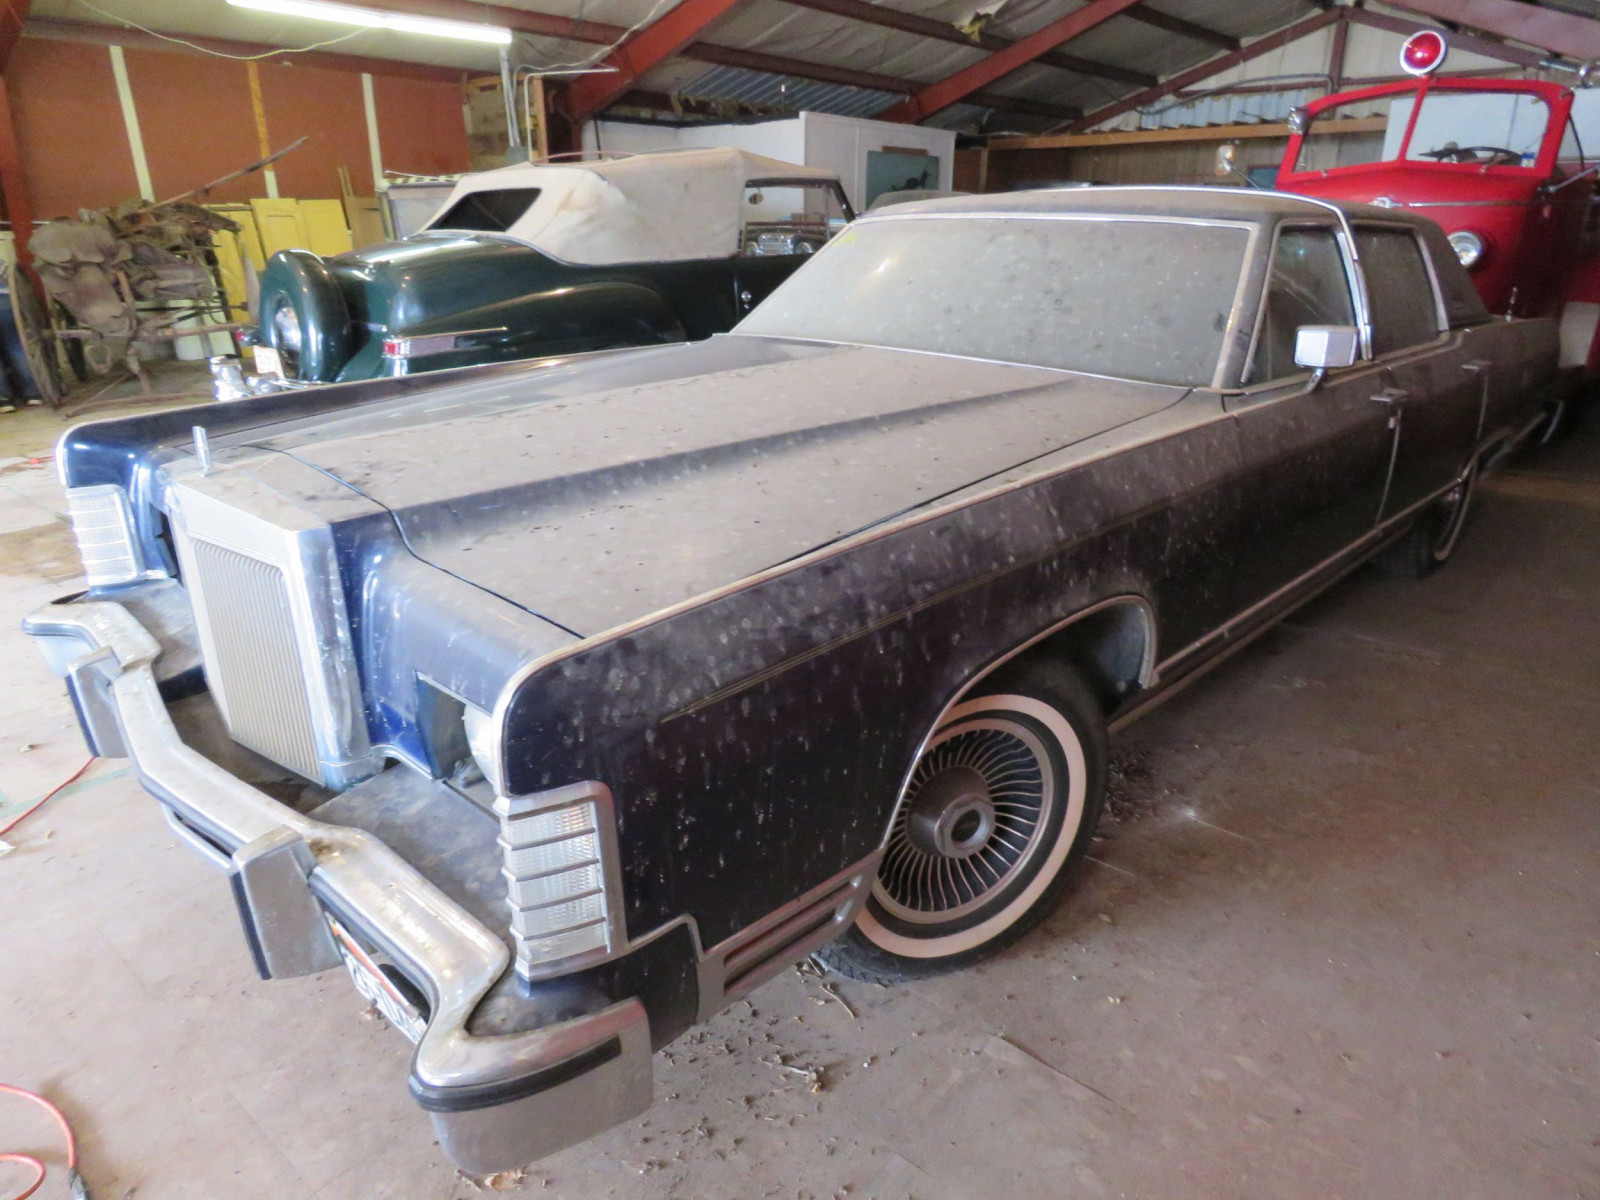 1979 lincoln continental Town Car 4dr Sedan - Image 3